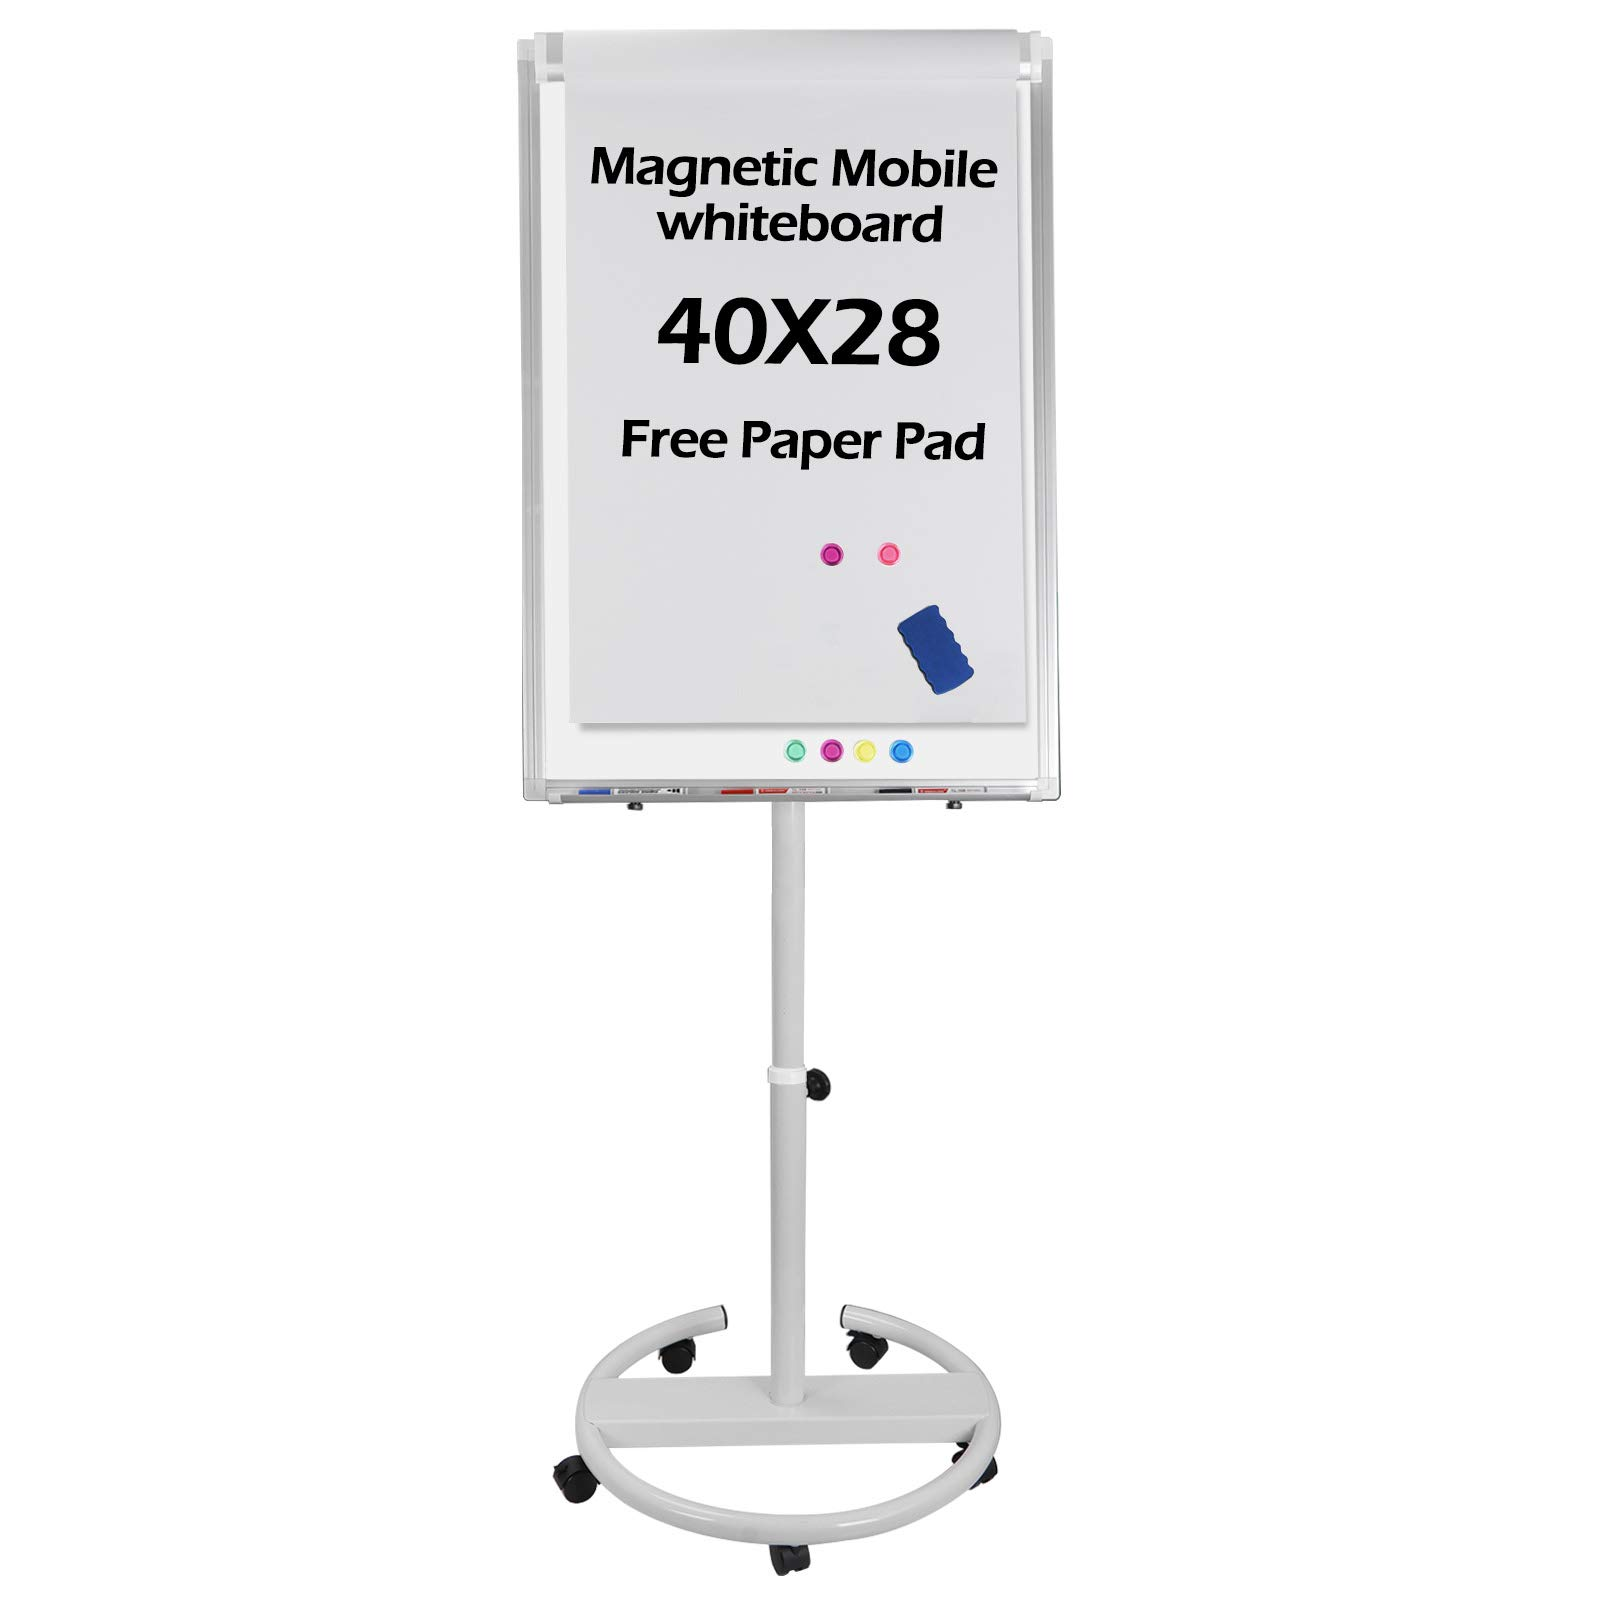 F2C 40 x 28 inch Mobile Magnetic Whiteboard Portable Dry Erase Board Height Adjustable Easel Board with Rolling Stand, w/Eraser, 3 Markers, Flipchart Paper Pad, 6 Magnets